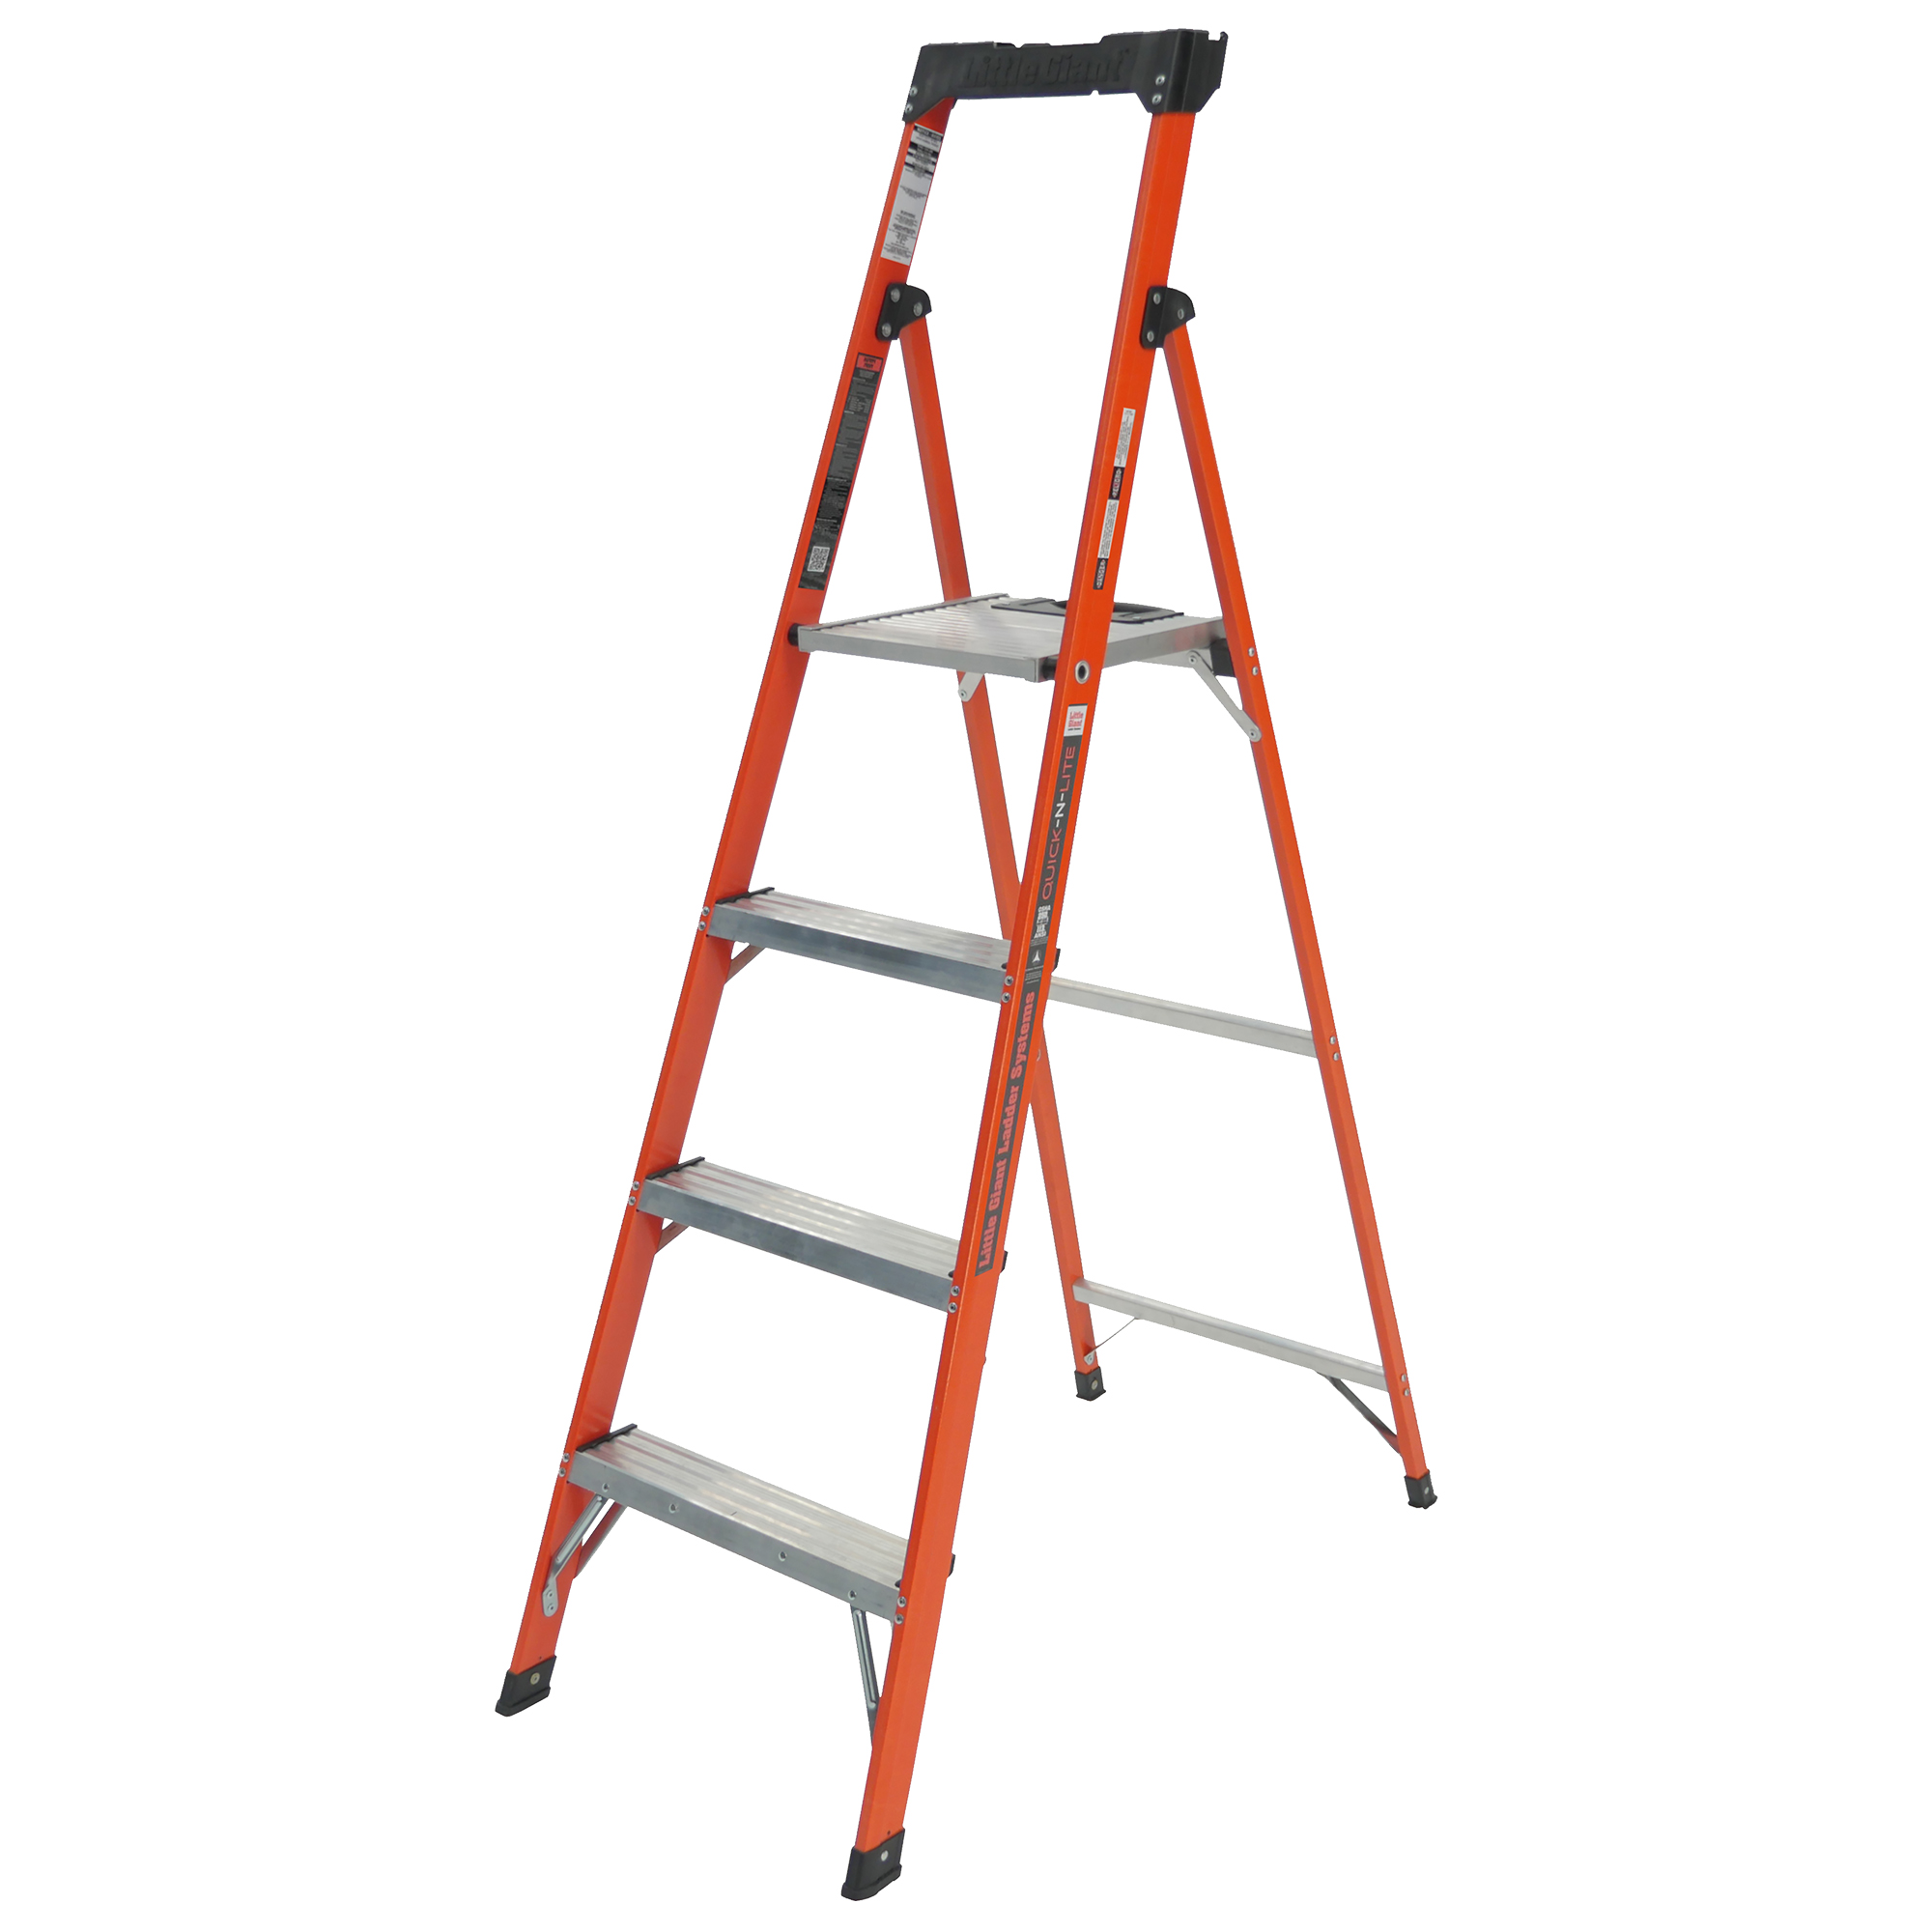 Little Giant Quick-N-Lite, Model 6' Type I 250.lbs rated, aluminum stepladder by Wing Enterprises, Inc.